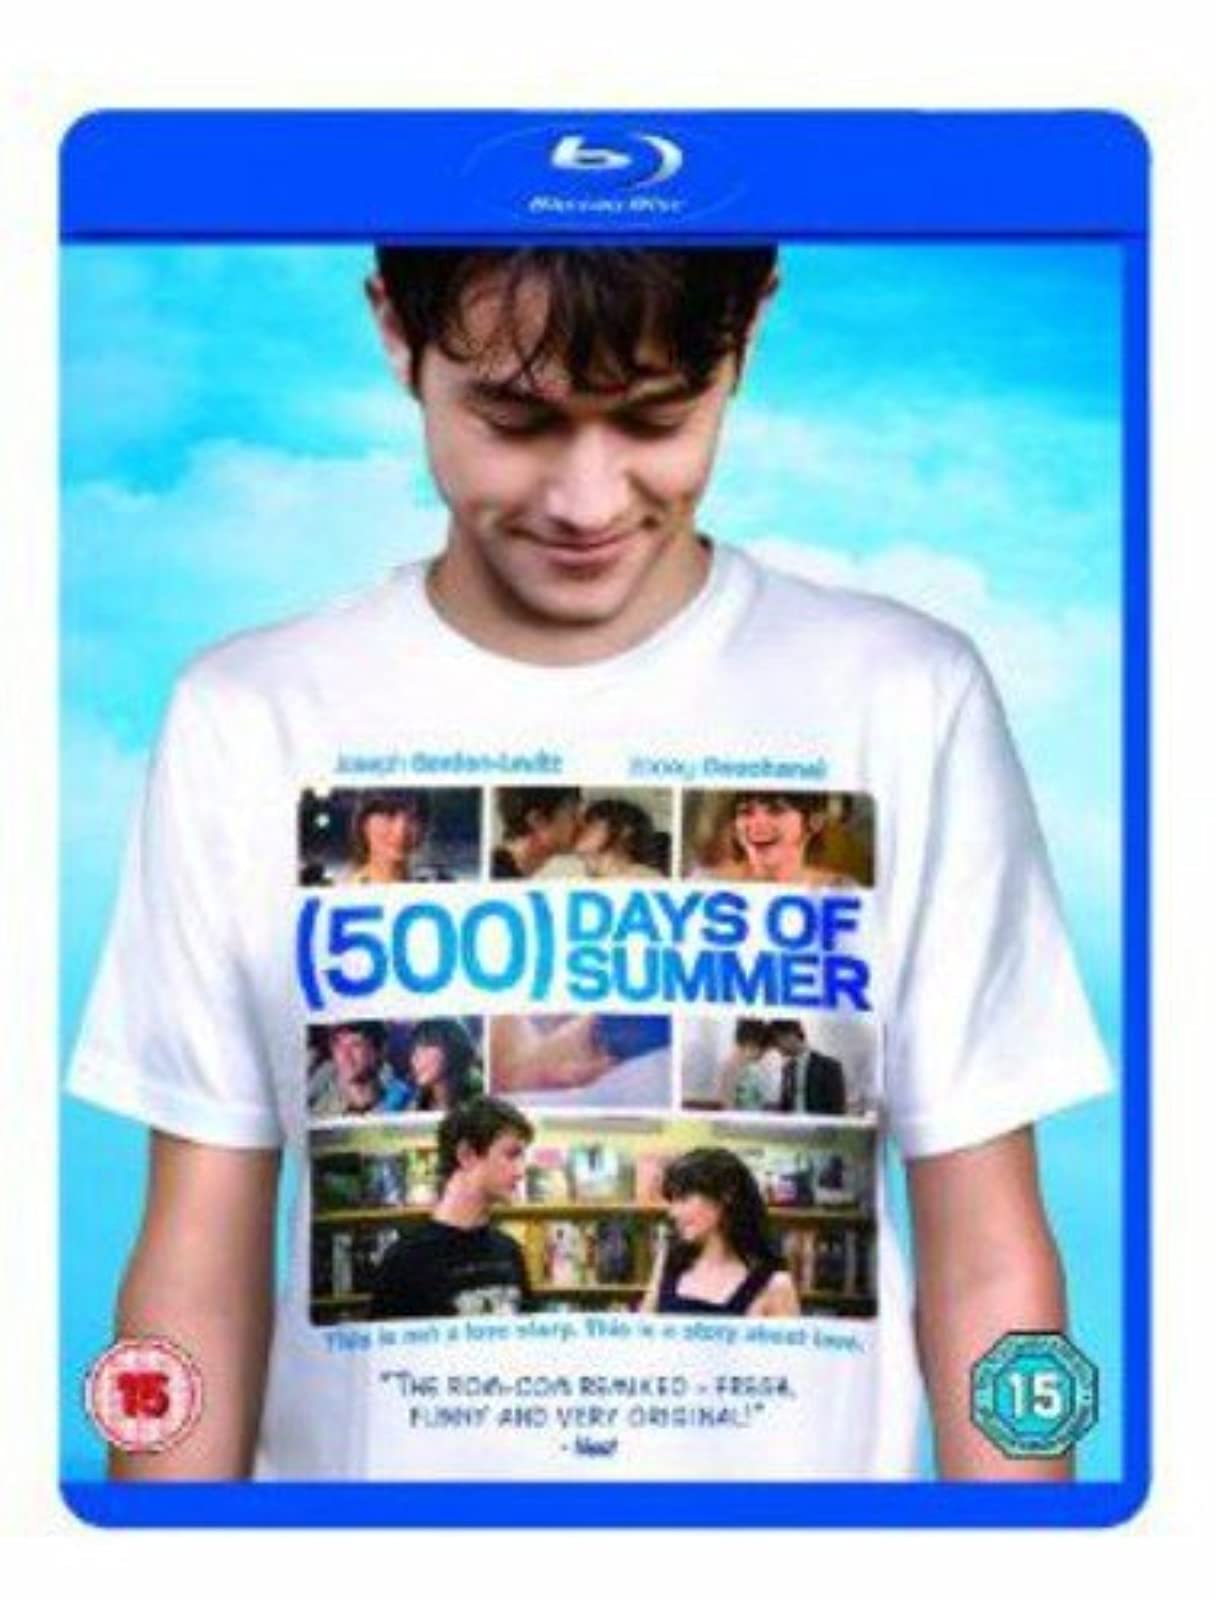 500 Days Of Summer Blu-Ray On Blu-Ray With Joseph Gordon-Levitt Music And Concer